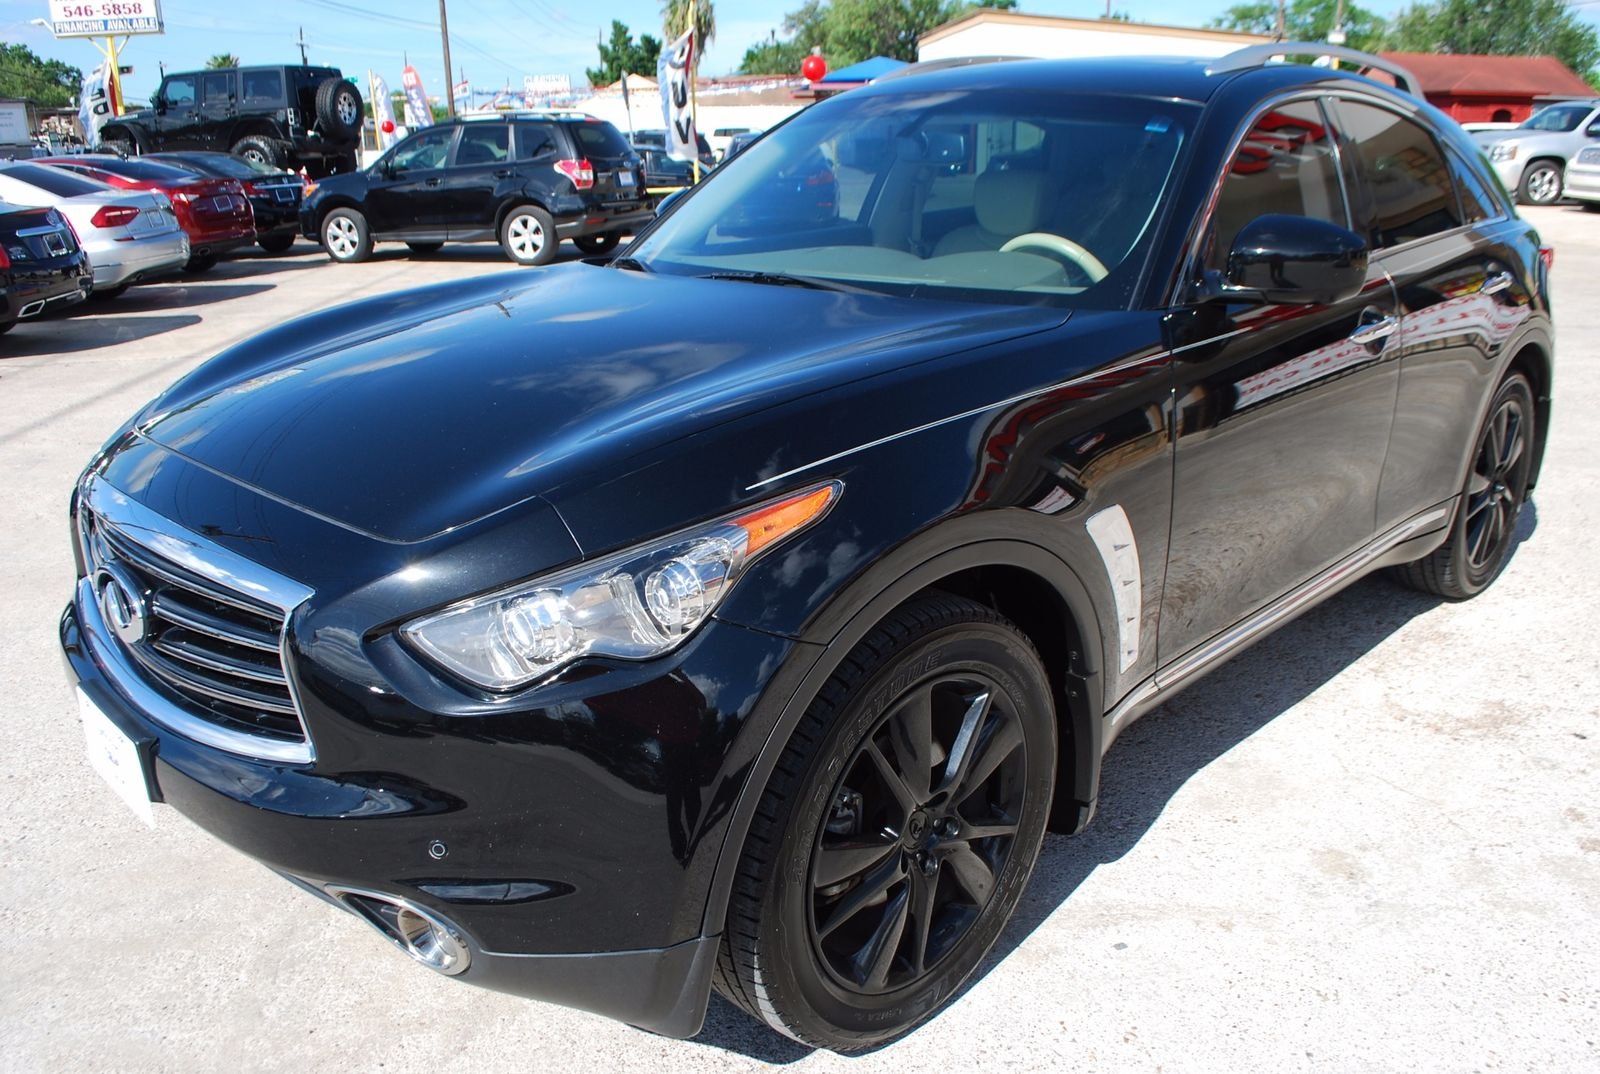 2013 infiniti fx37 brownsville tx english motors 2013 infiniti fx37 brownsville tx english motors in brownsville vanachro Image collections